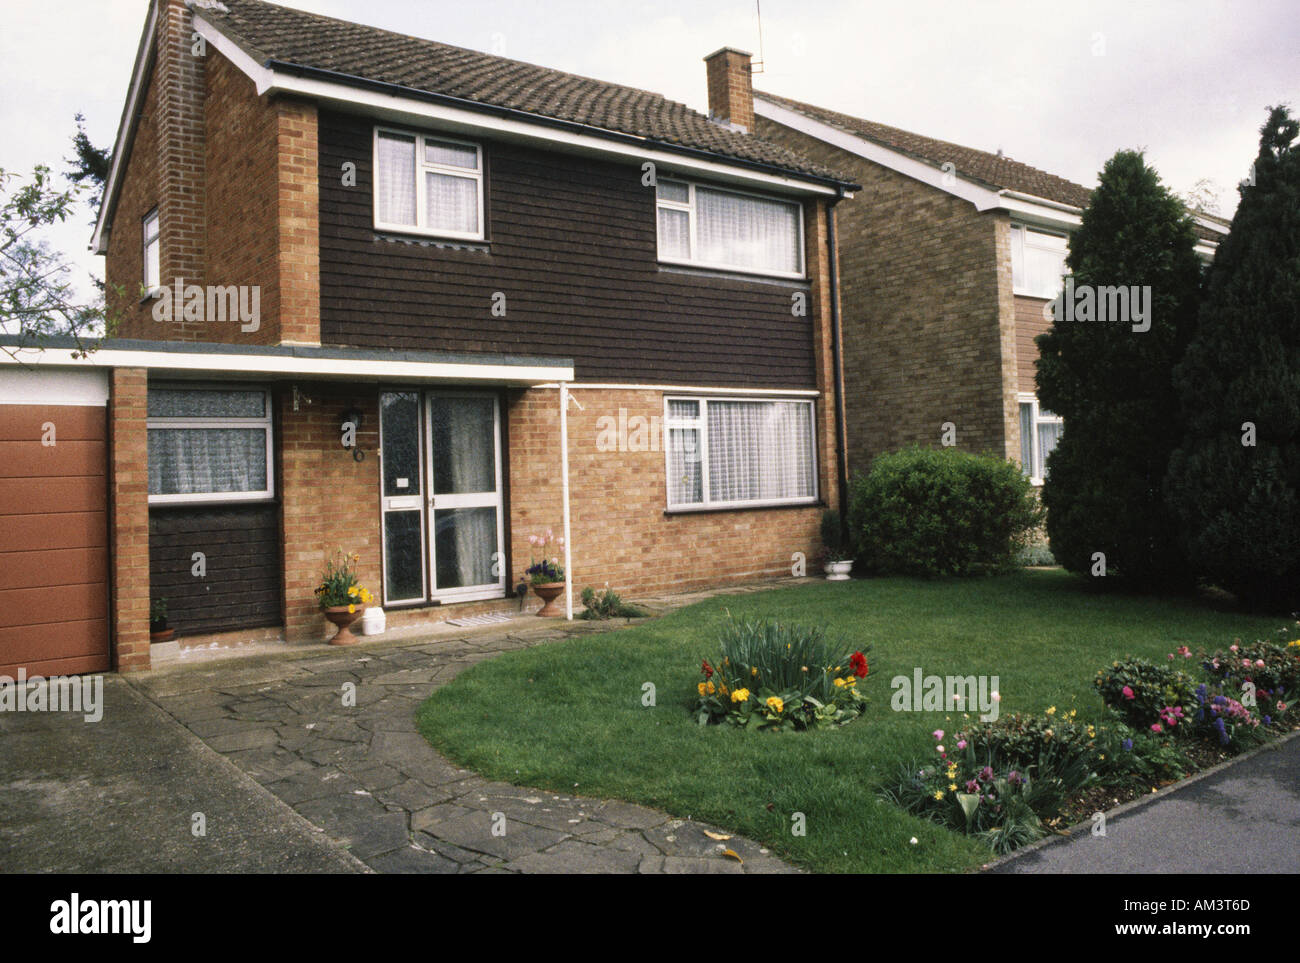 1970S House Maidenhead England Typical Detached Houses Of The 1970S Stock